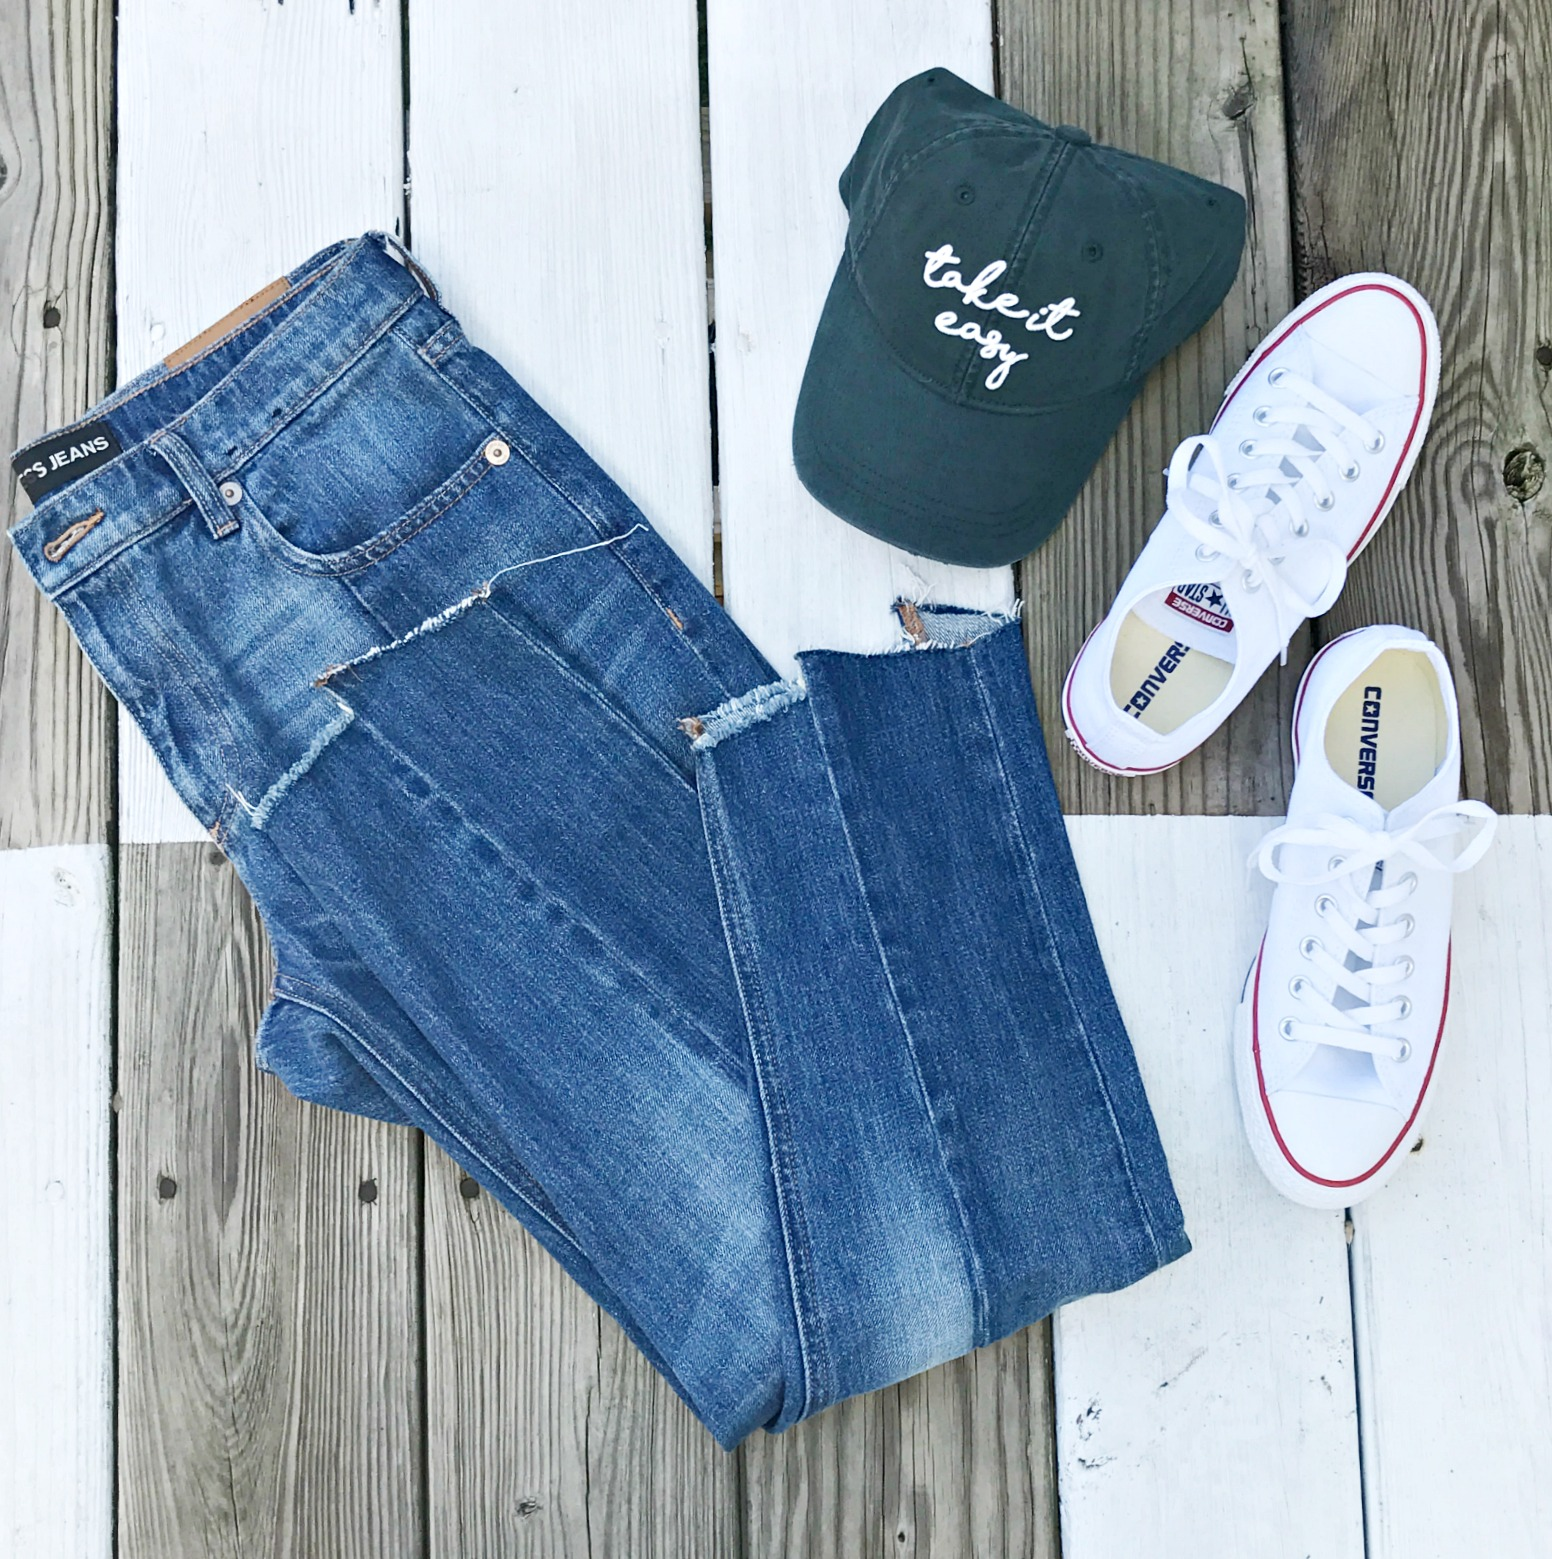 Express jeans, American eagle hat, converse